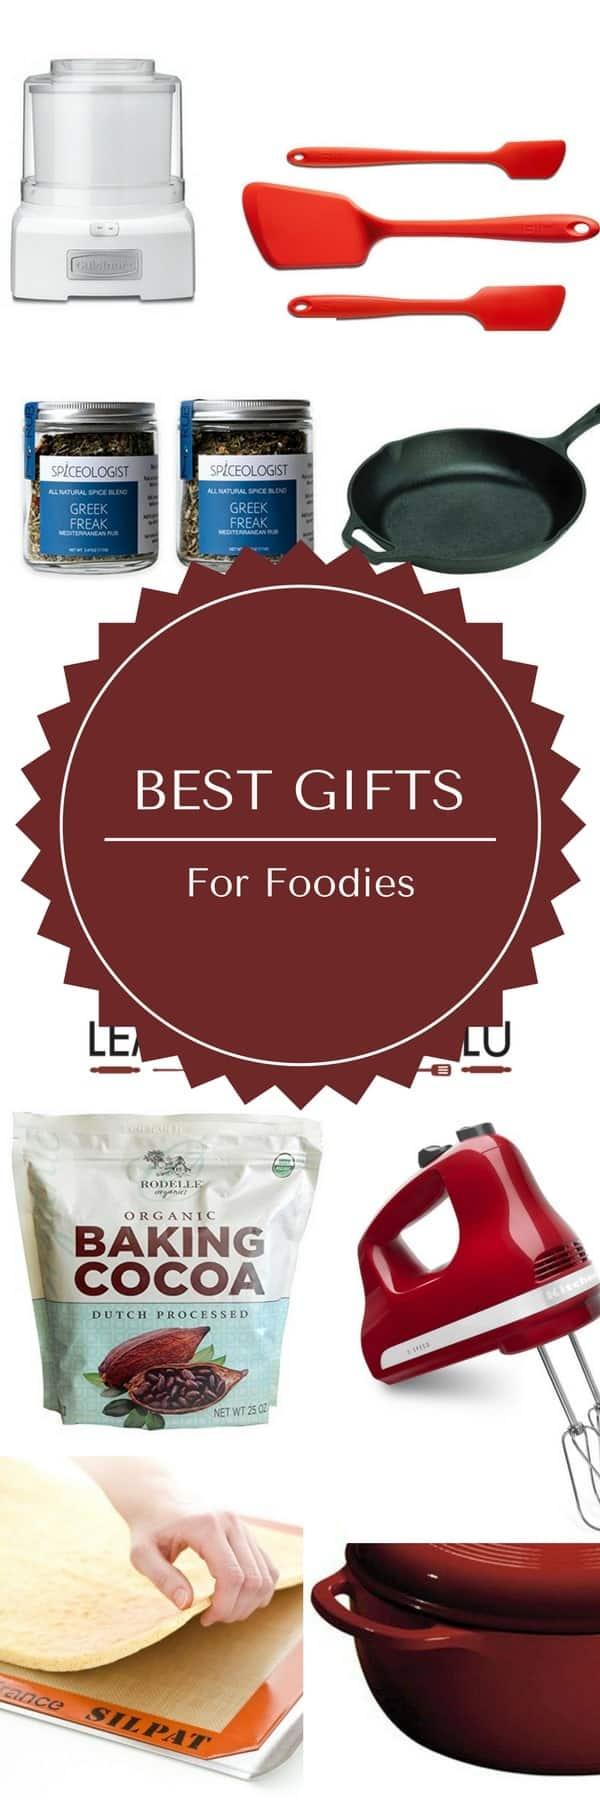 Know someone who loves food? Here my list of the best gifts for foodies!